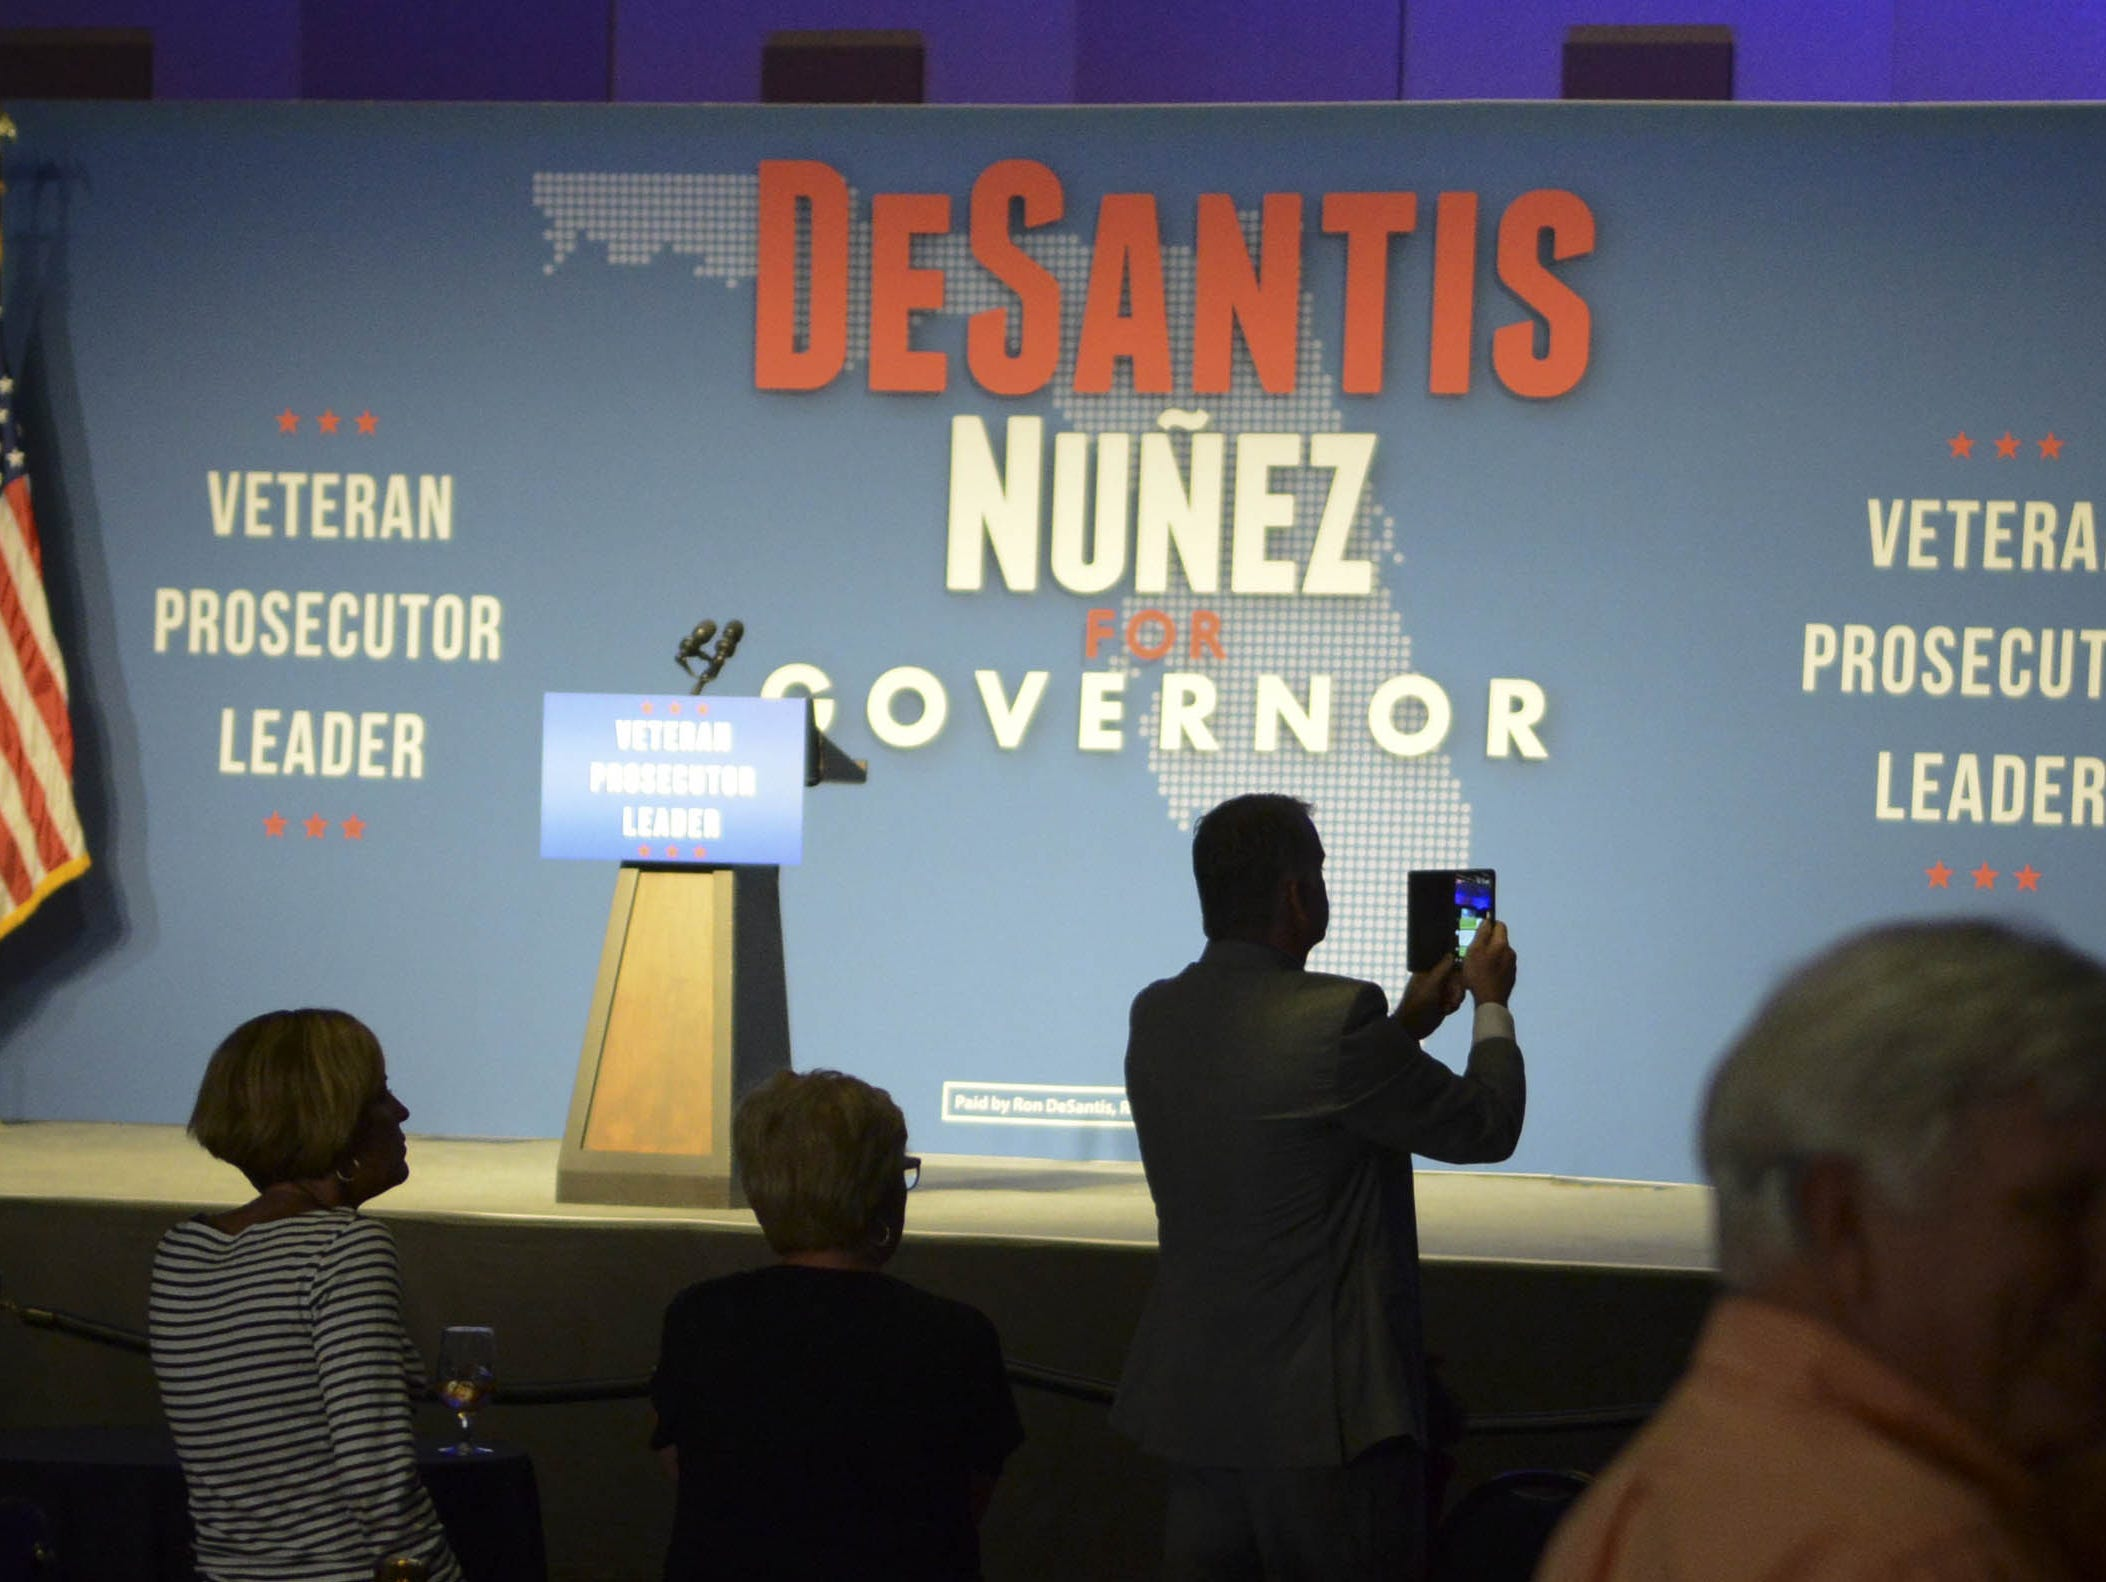 Ron DeSantis supporters take pictures of the stage during the candidate's watch party in Orlando.